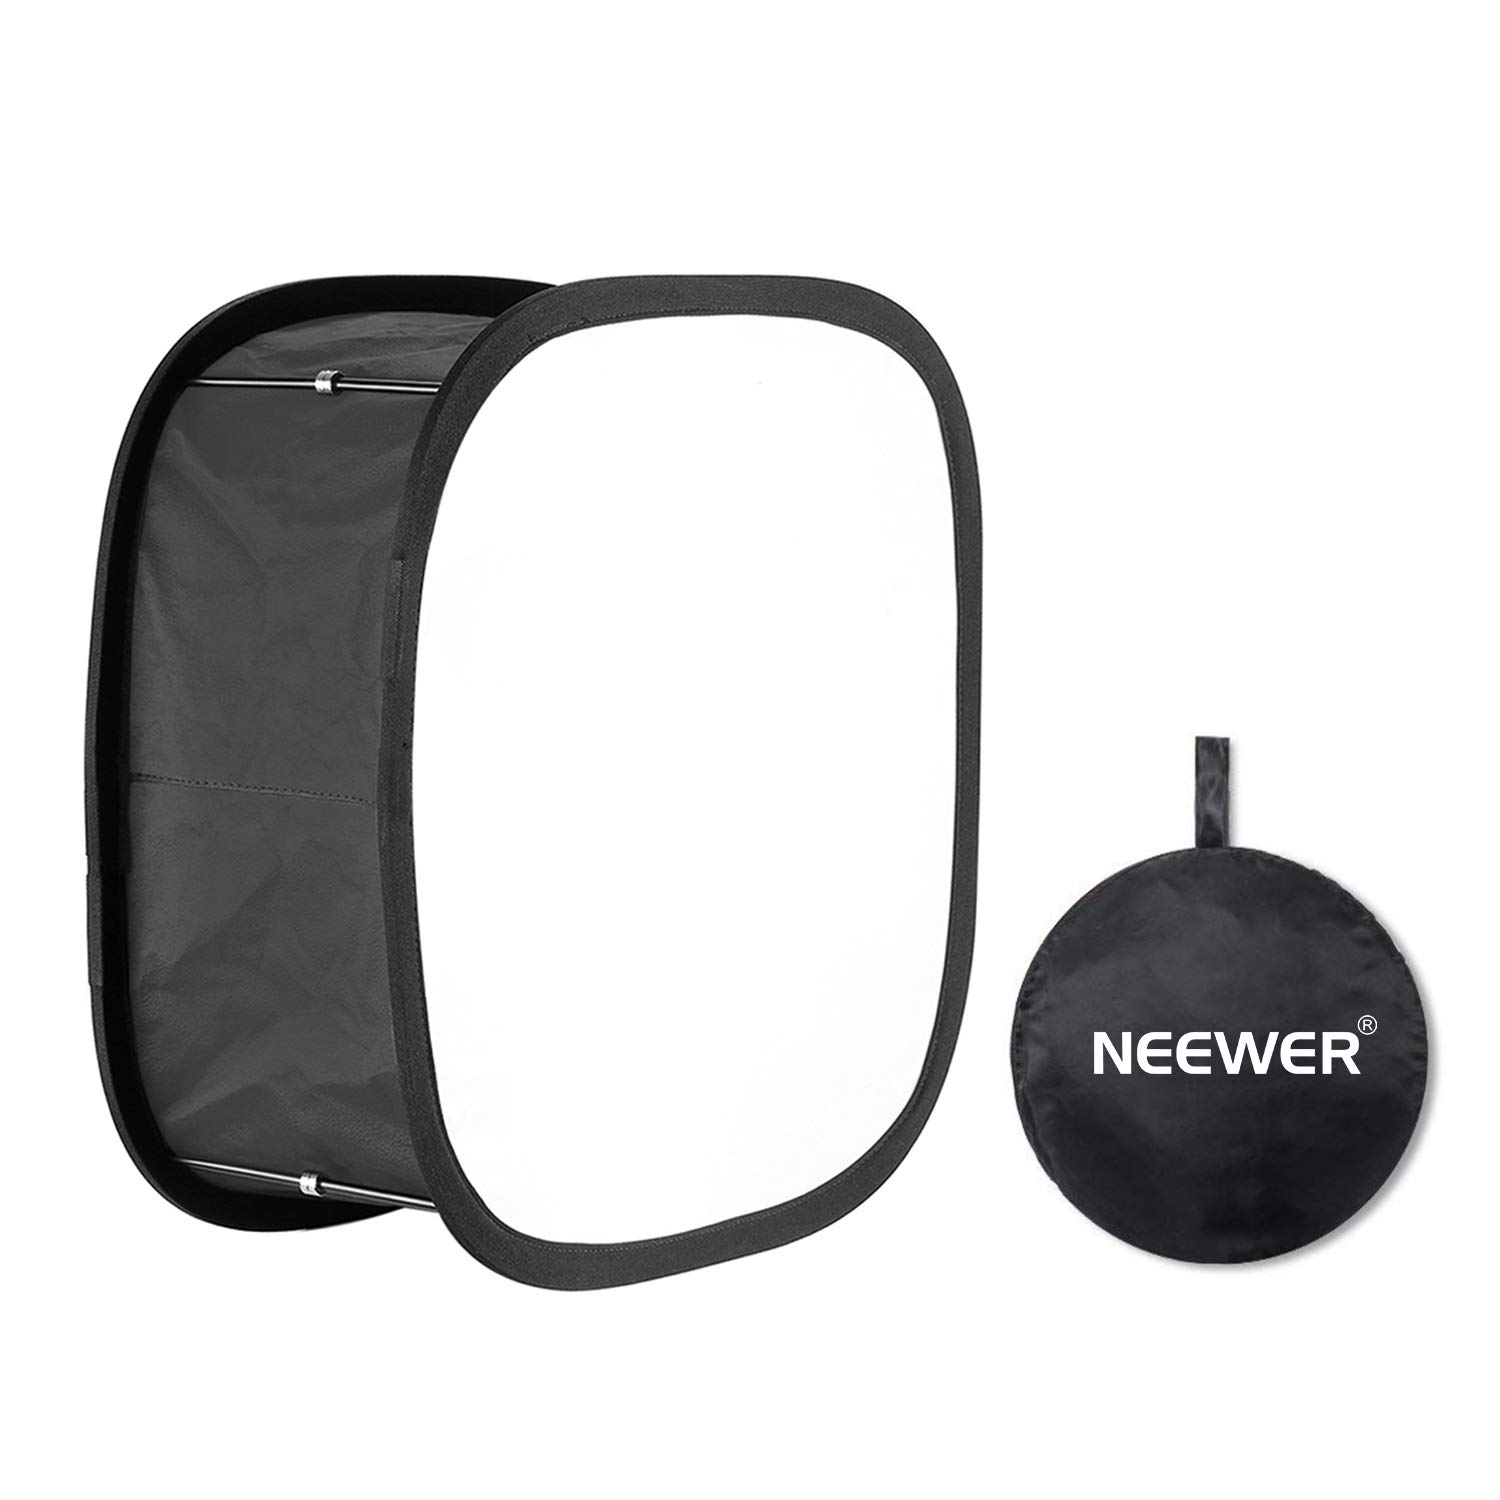 Neewer LED Luz Softbox de Panel para 480 LED Apertura de 23.5x23.5cm Plegable con cinta de Bloqueo y Bolsa de Transporte para Retratos de Estudio Fotográfico Video Aspecto Natural: Amazon.es: Electrónica